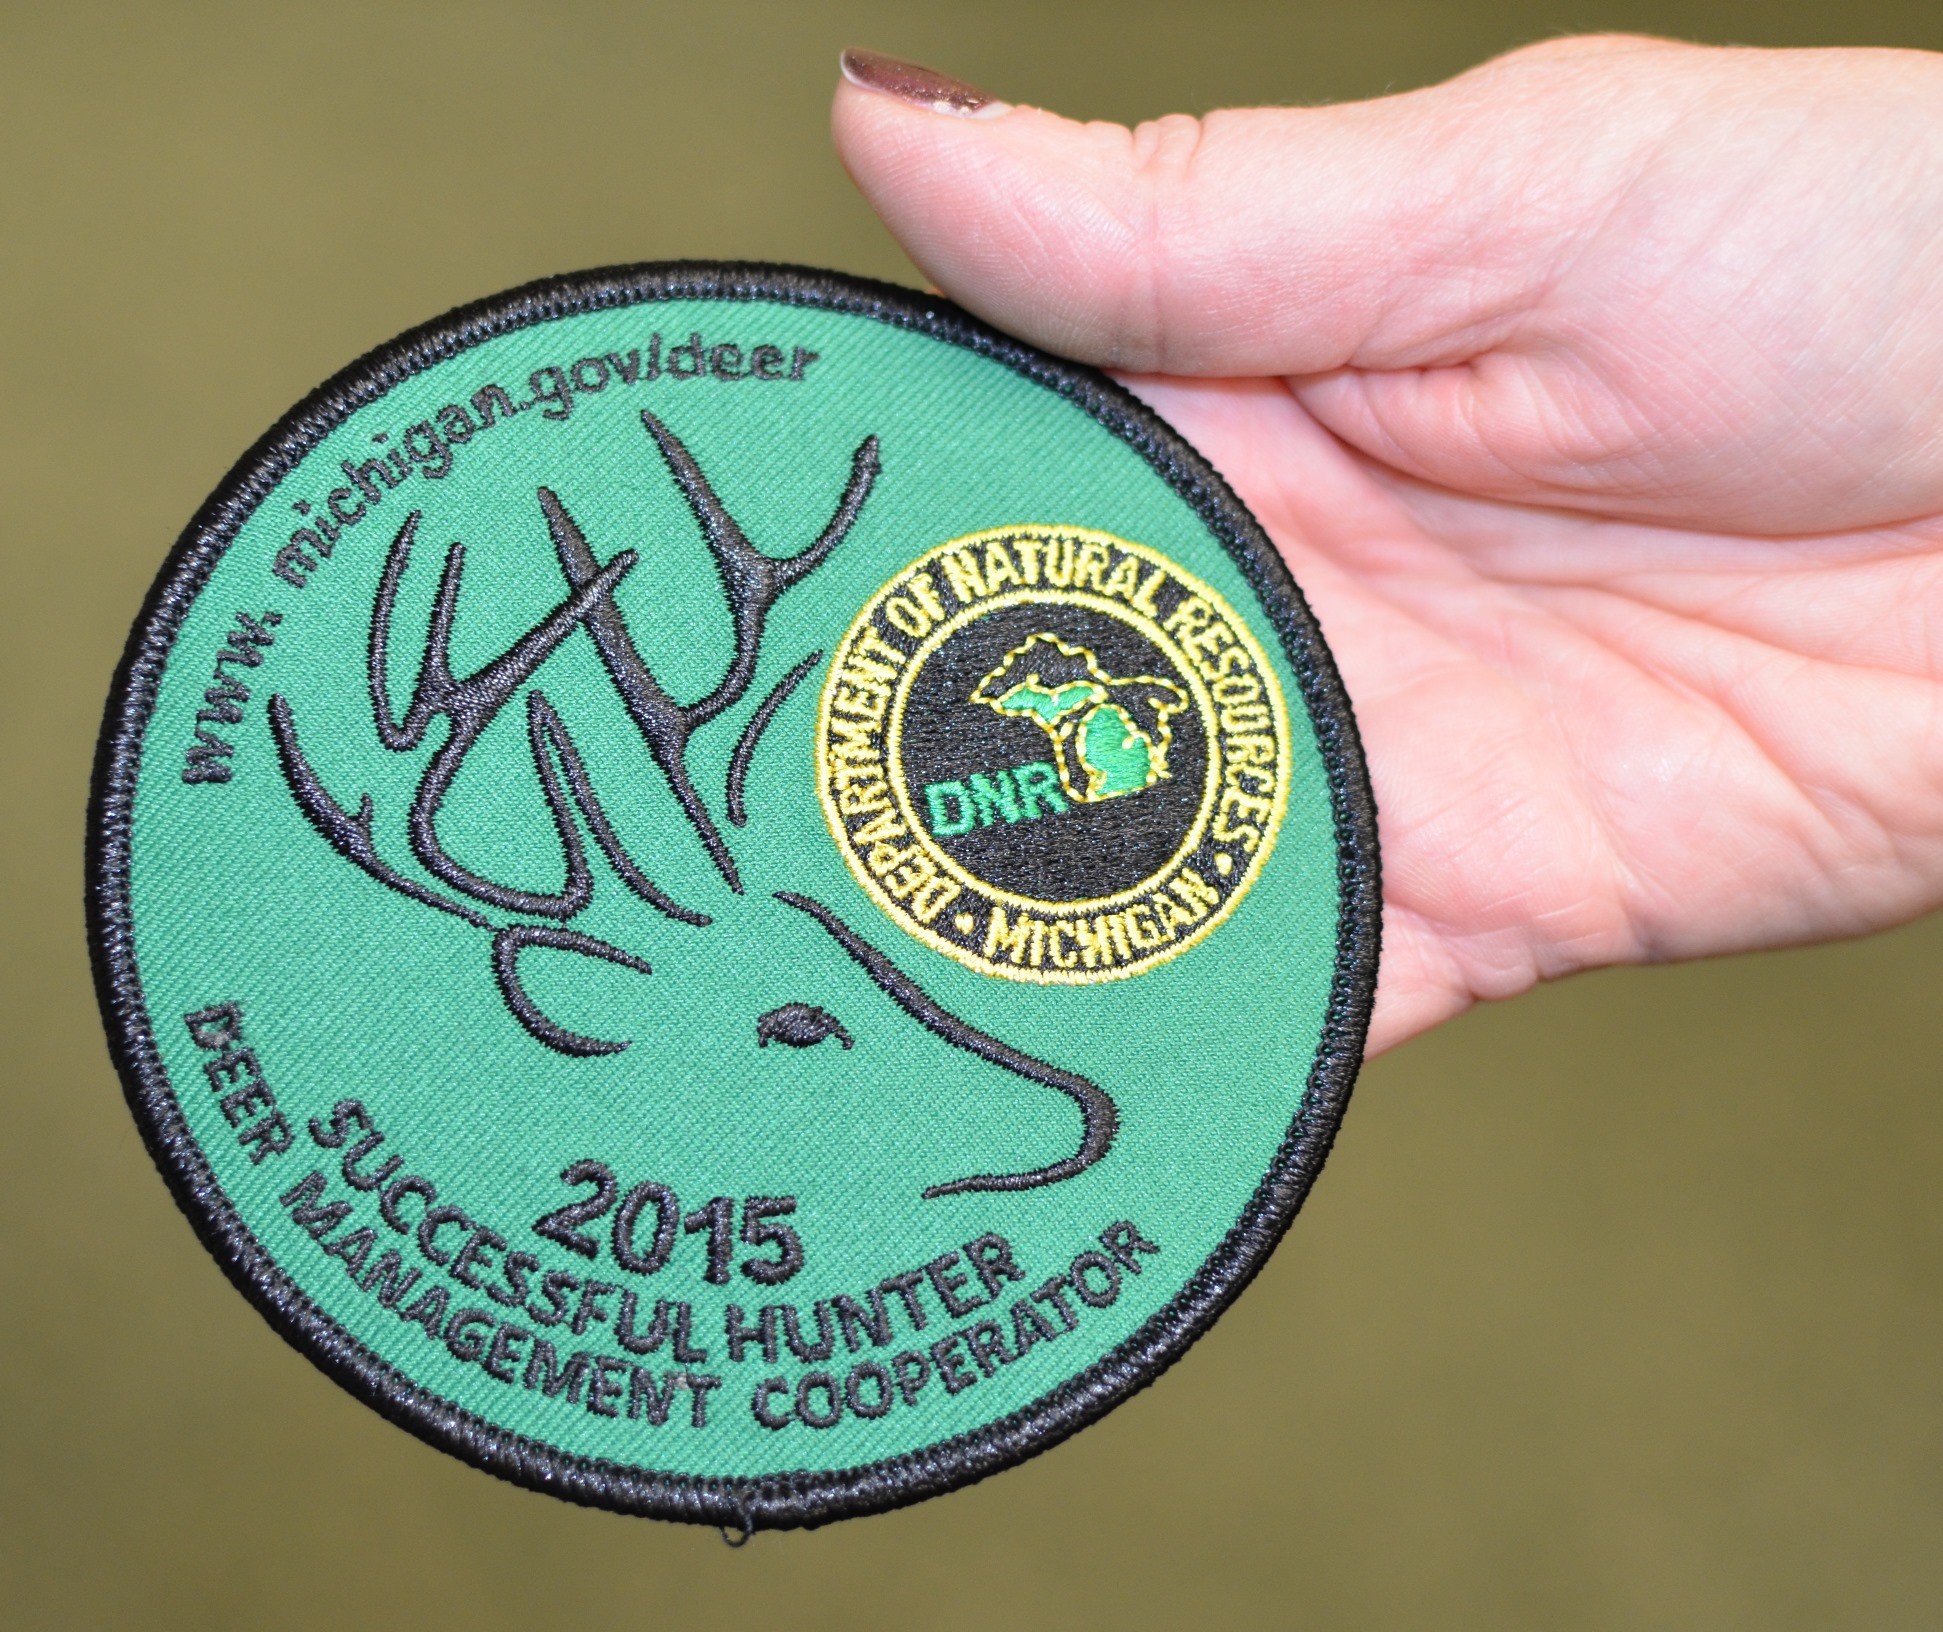 The 2015 DNR Successful Hunter patch